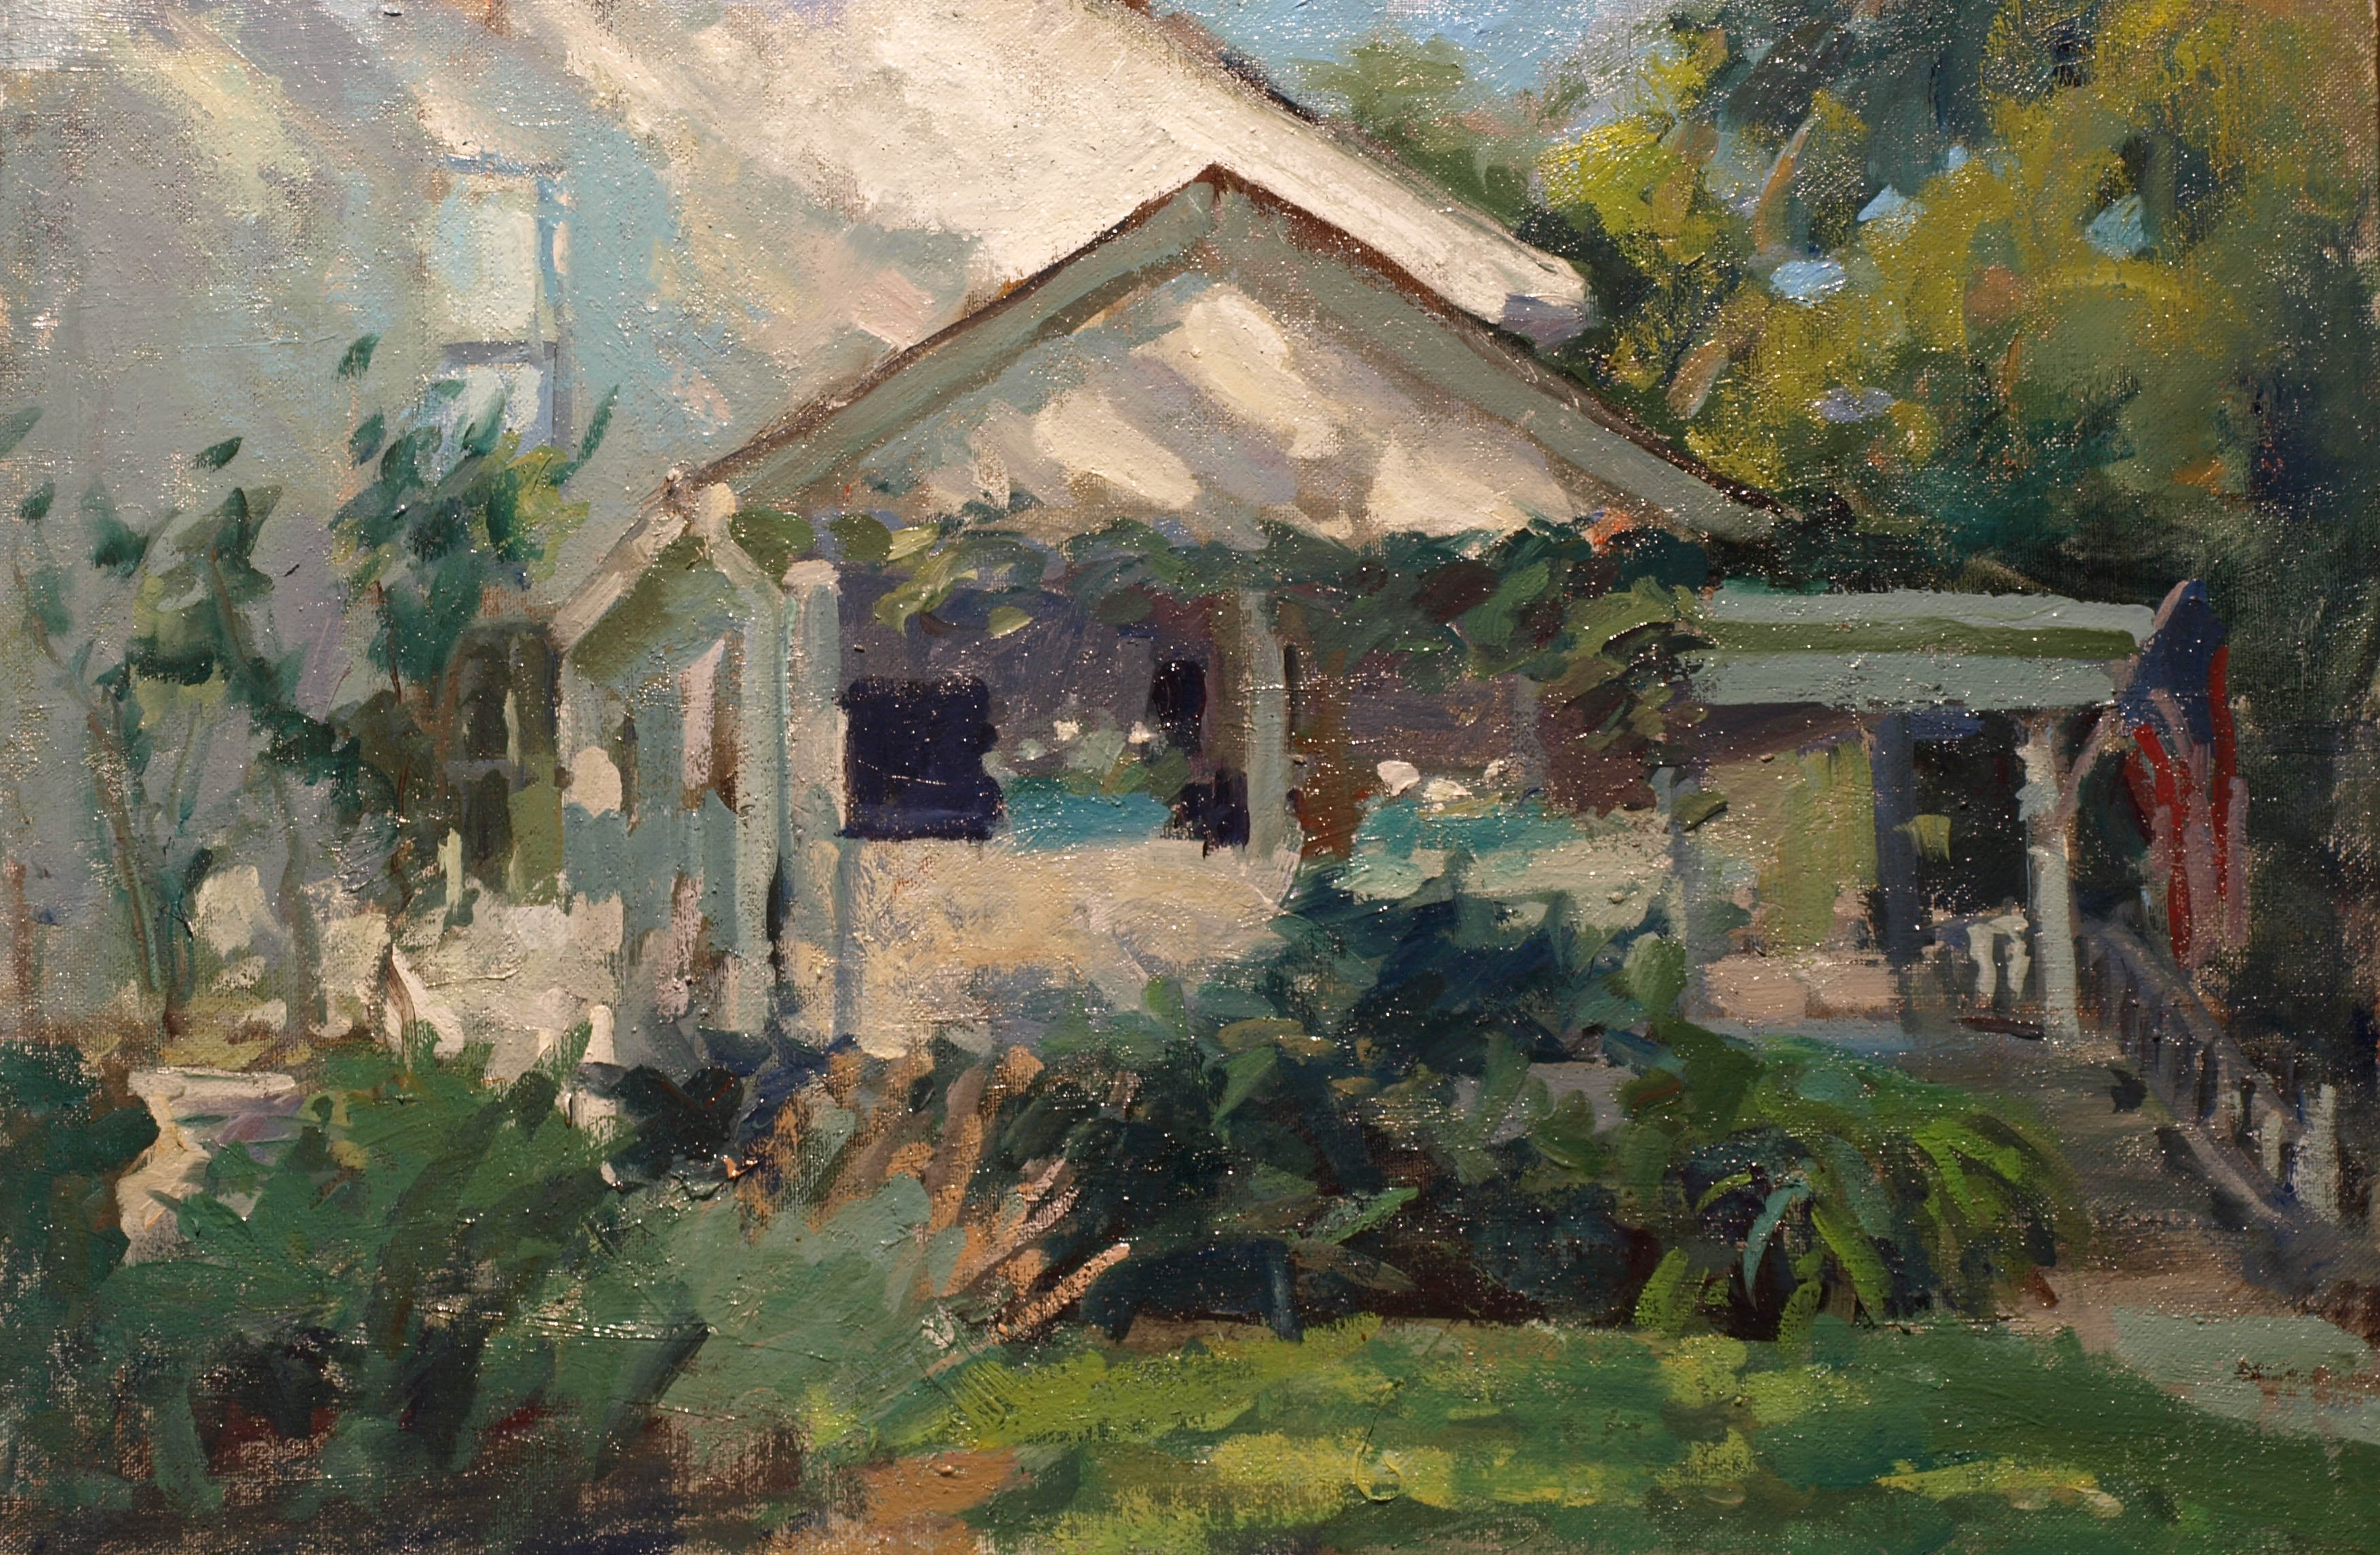 Front Porch, Oil on Canvas on Panel, 12 x 18 Inches, by Susan Grisell, $325